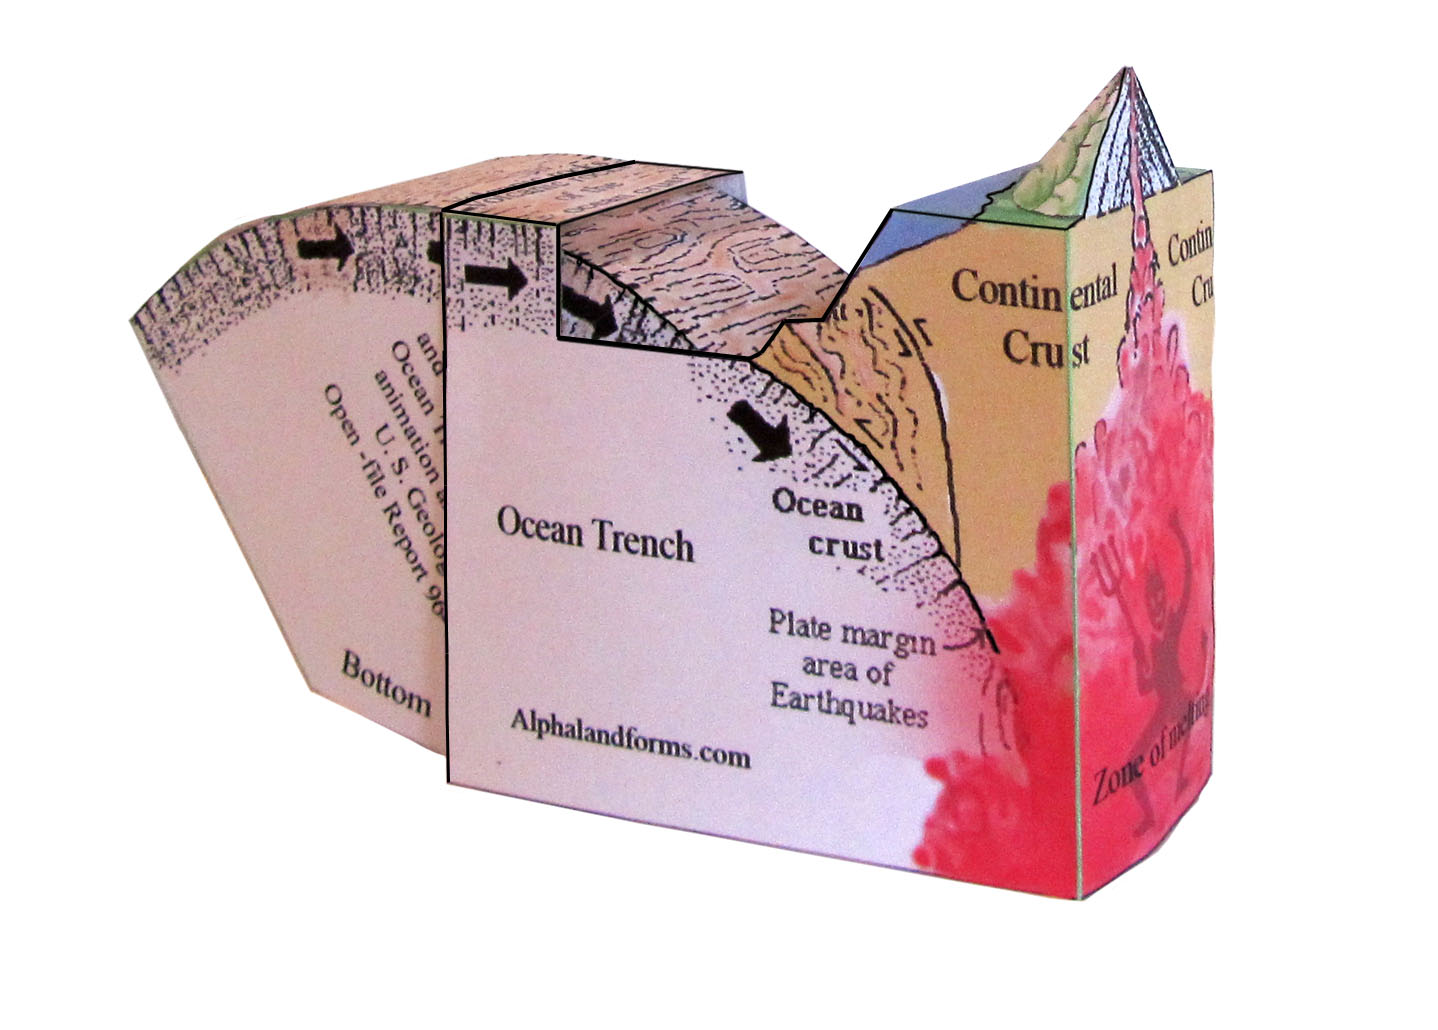 picture of ocean trench model